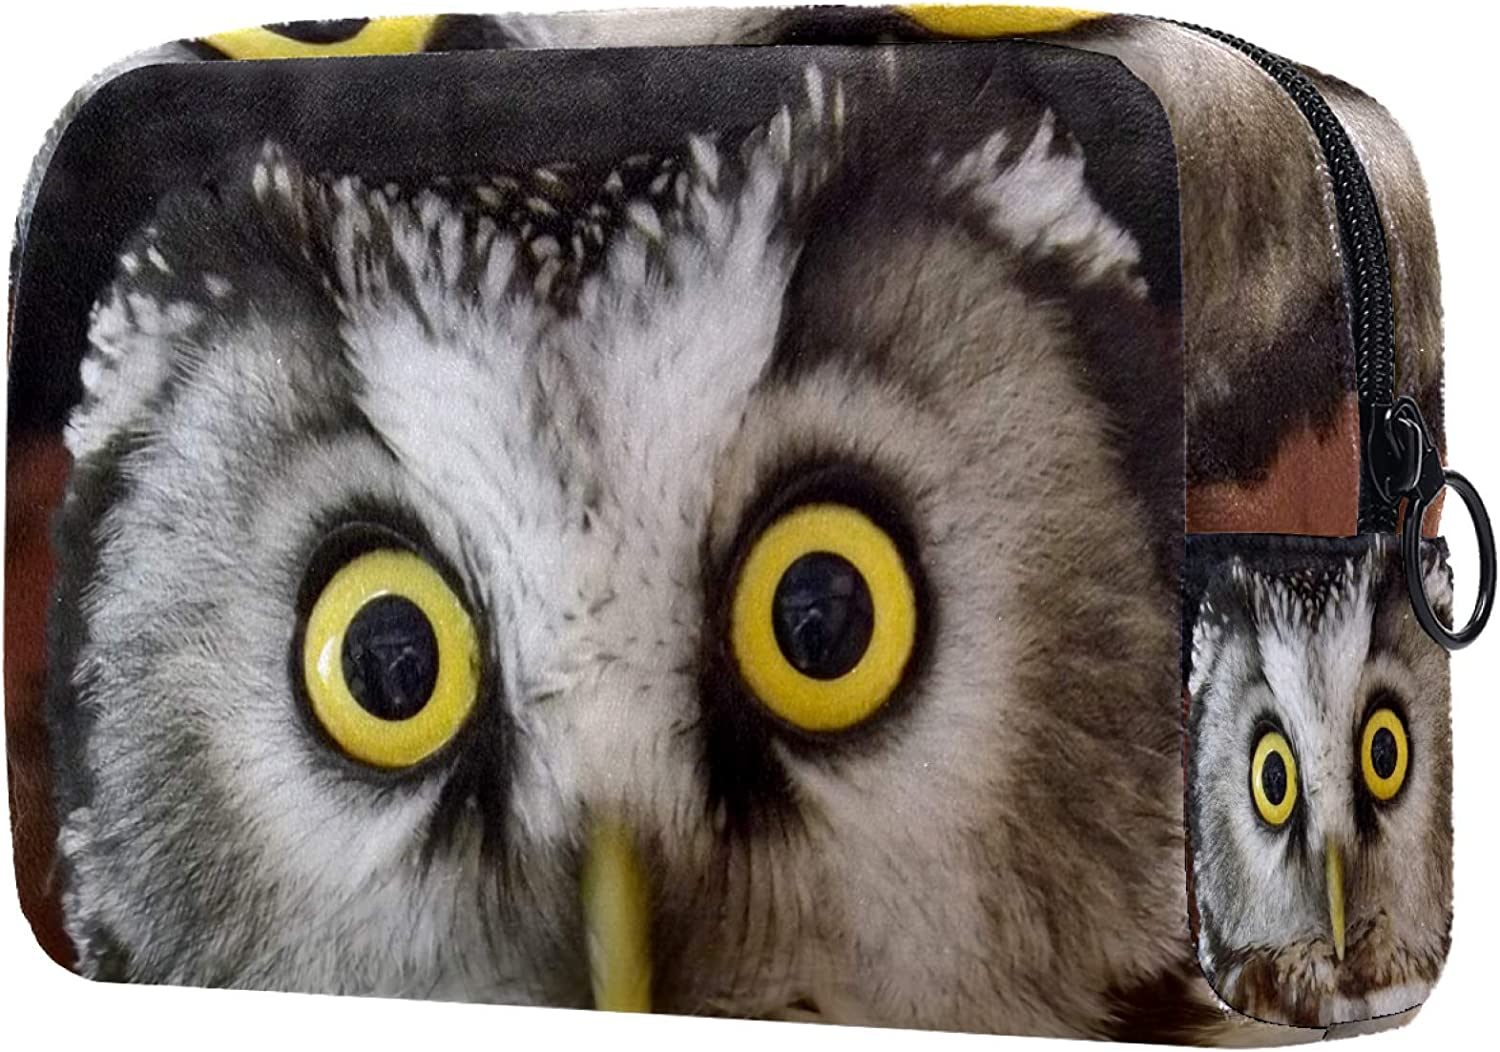 Cosmetic Bag Makeup Bags for Al sold out. Ba Women Now free shipping Pouch Small Travel